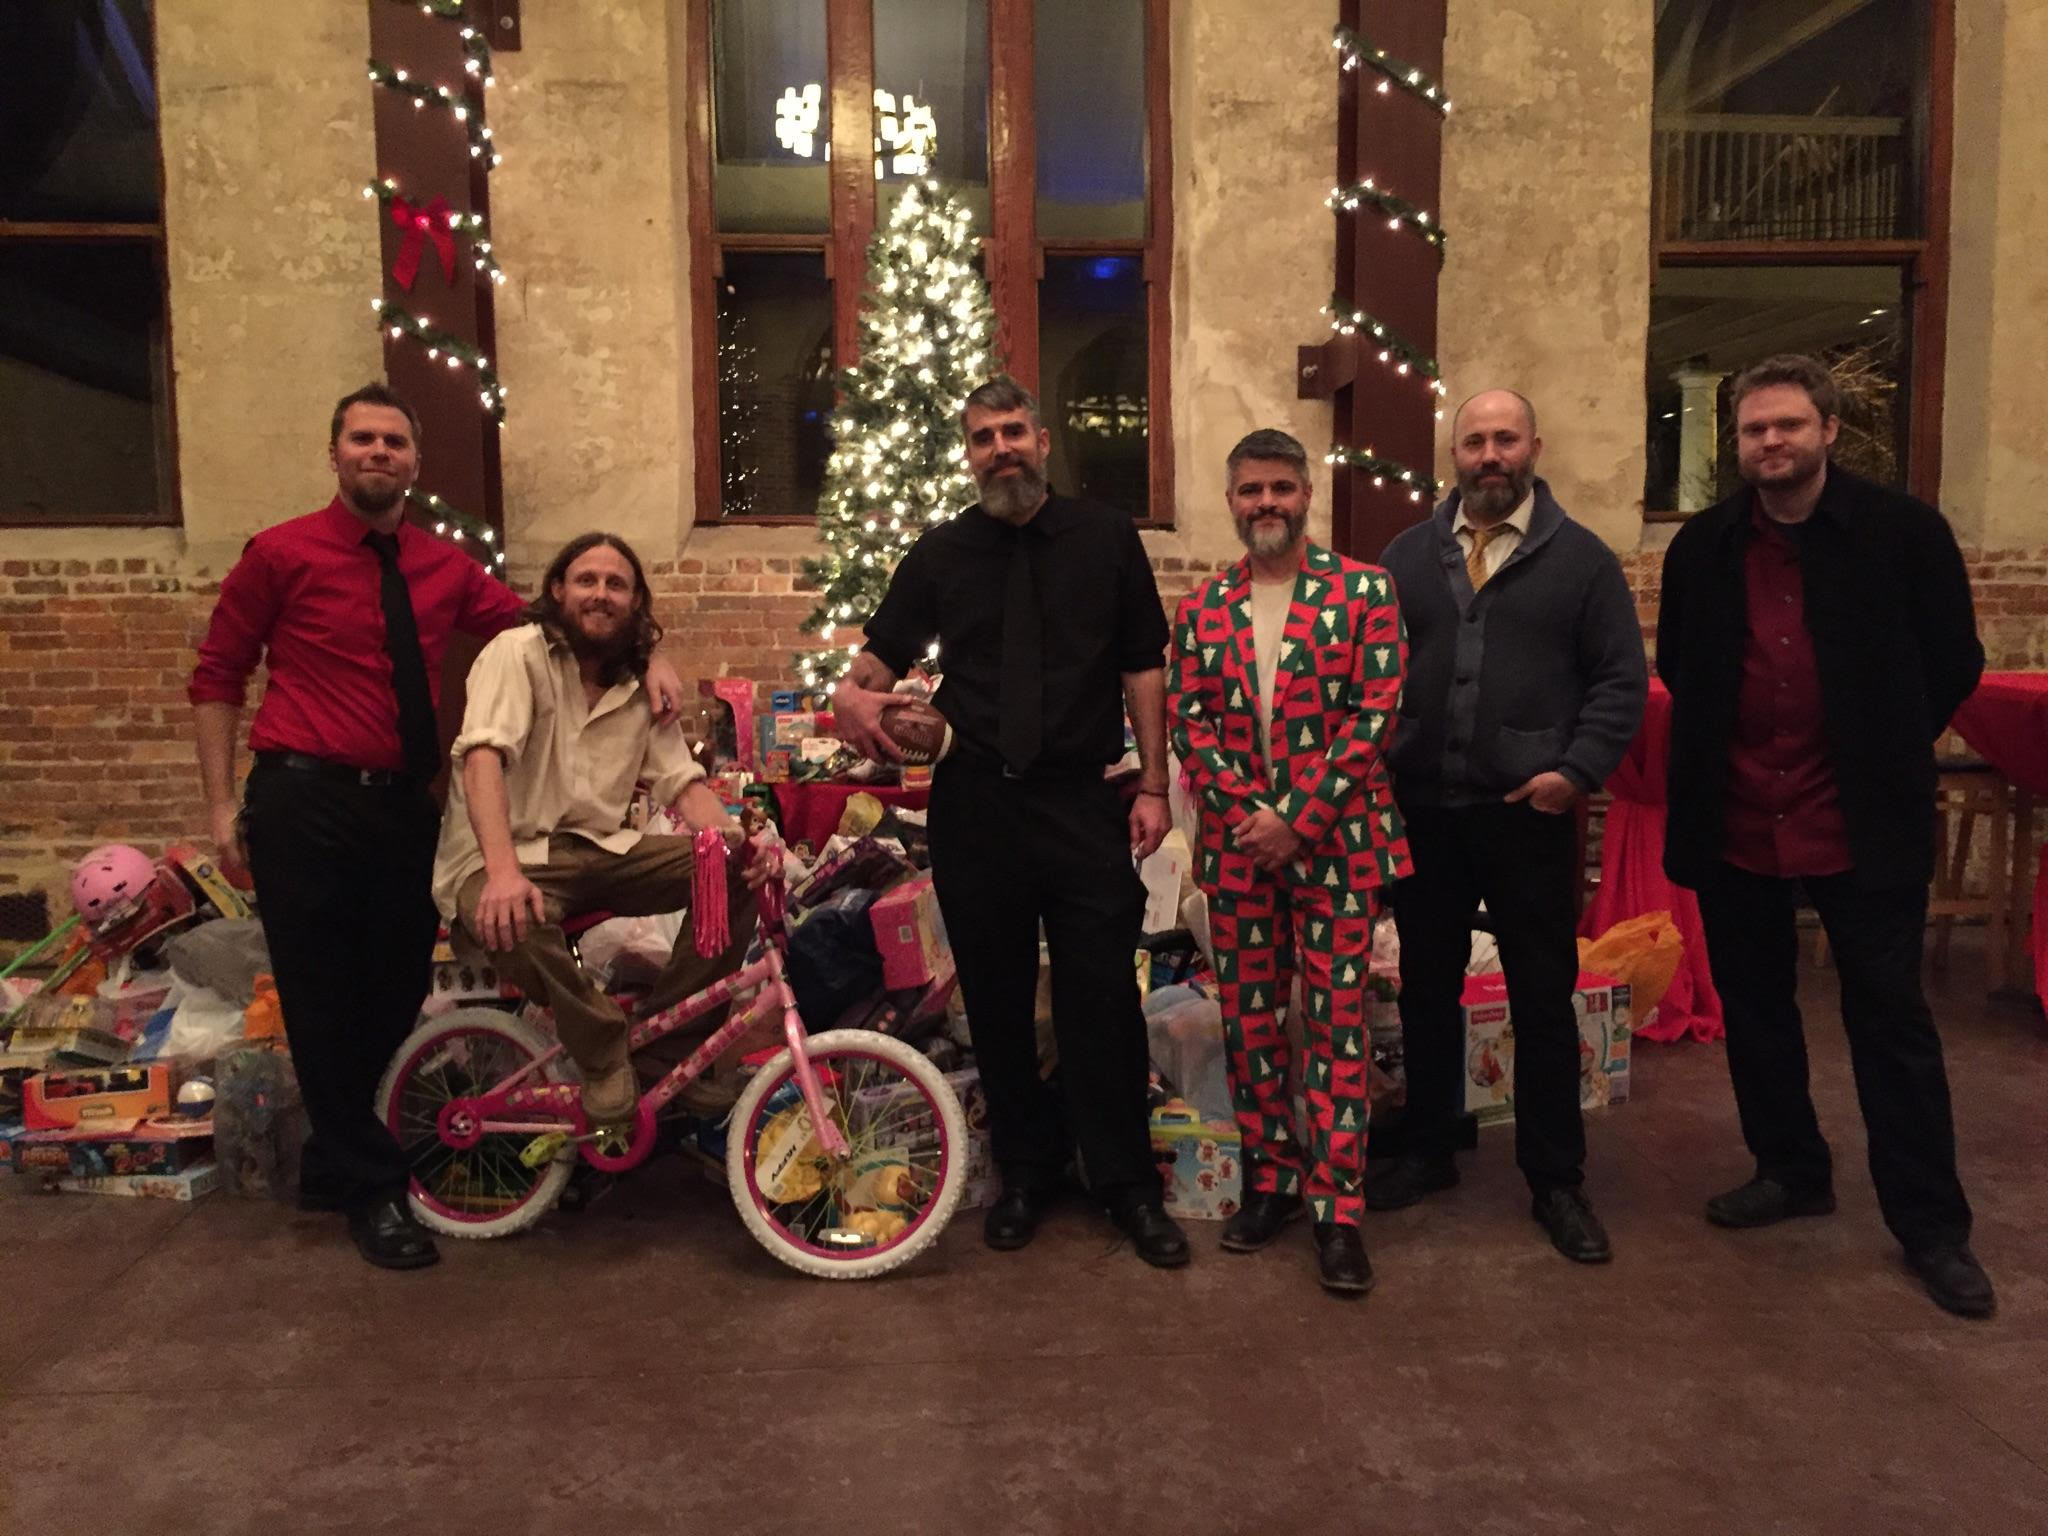 L Shape Lot raised several thousand dollars in toys at the annual Toys for Tots concert in 2015. Photo courtesy of Eric Miller.